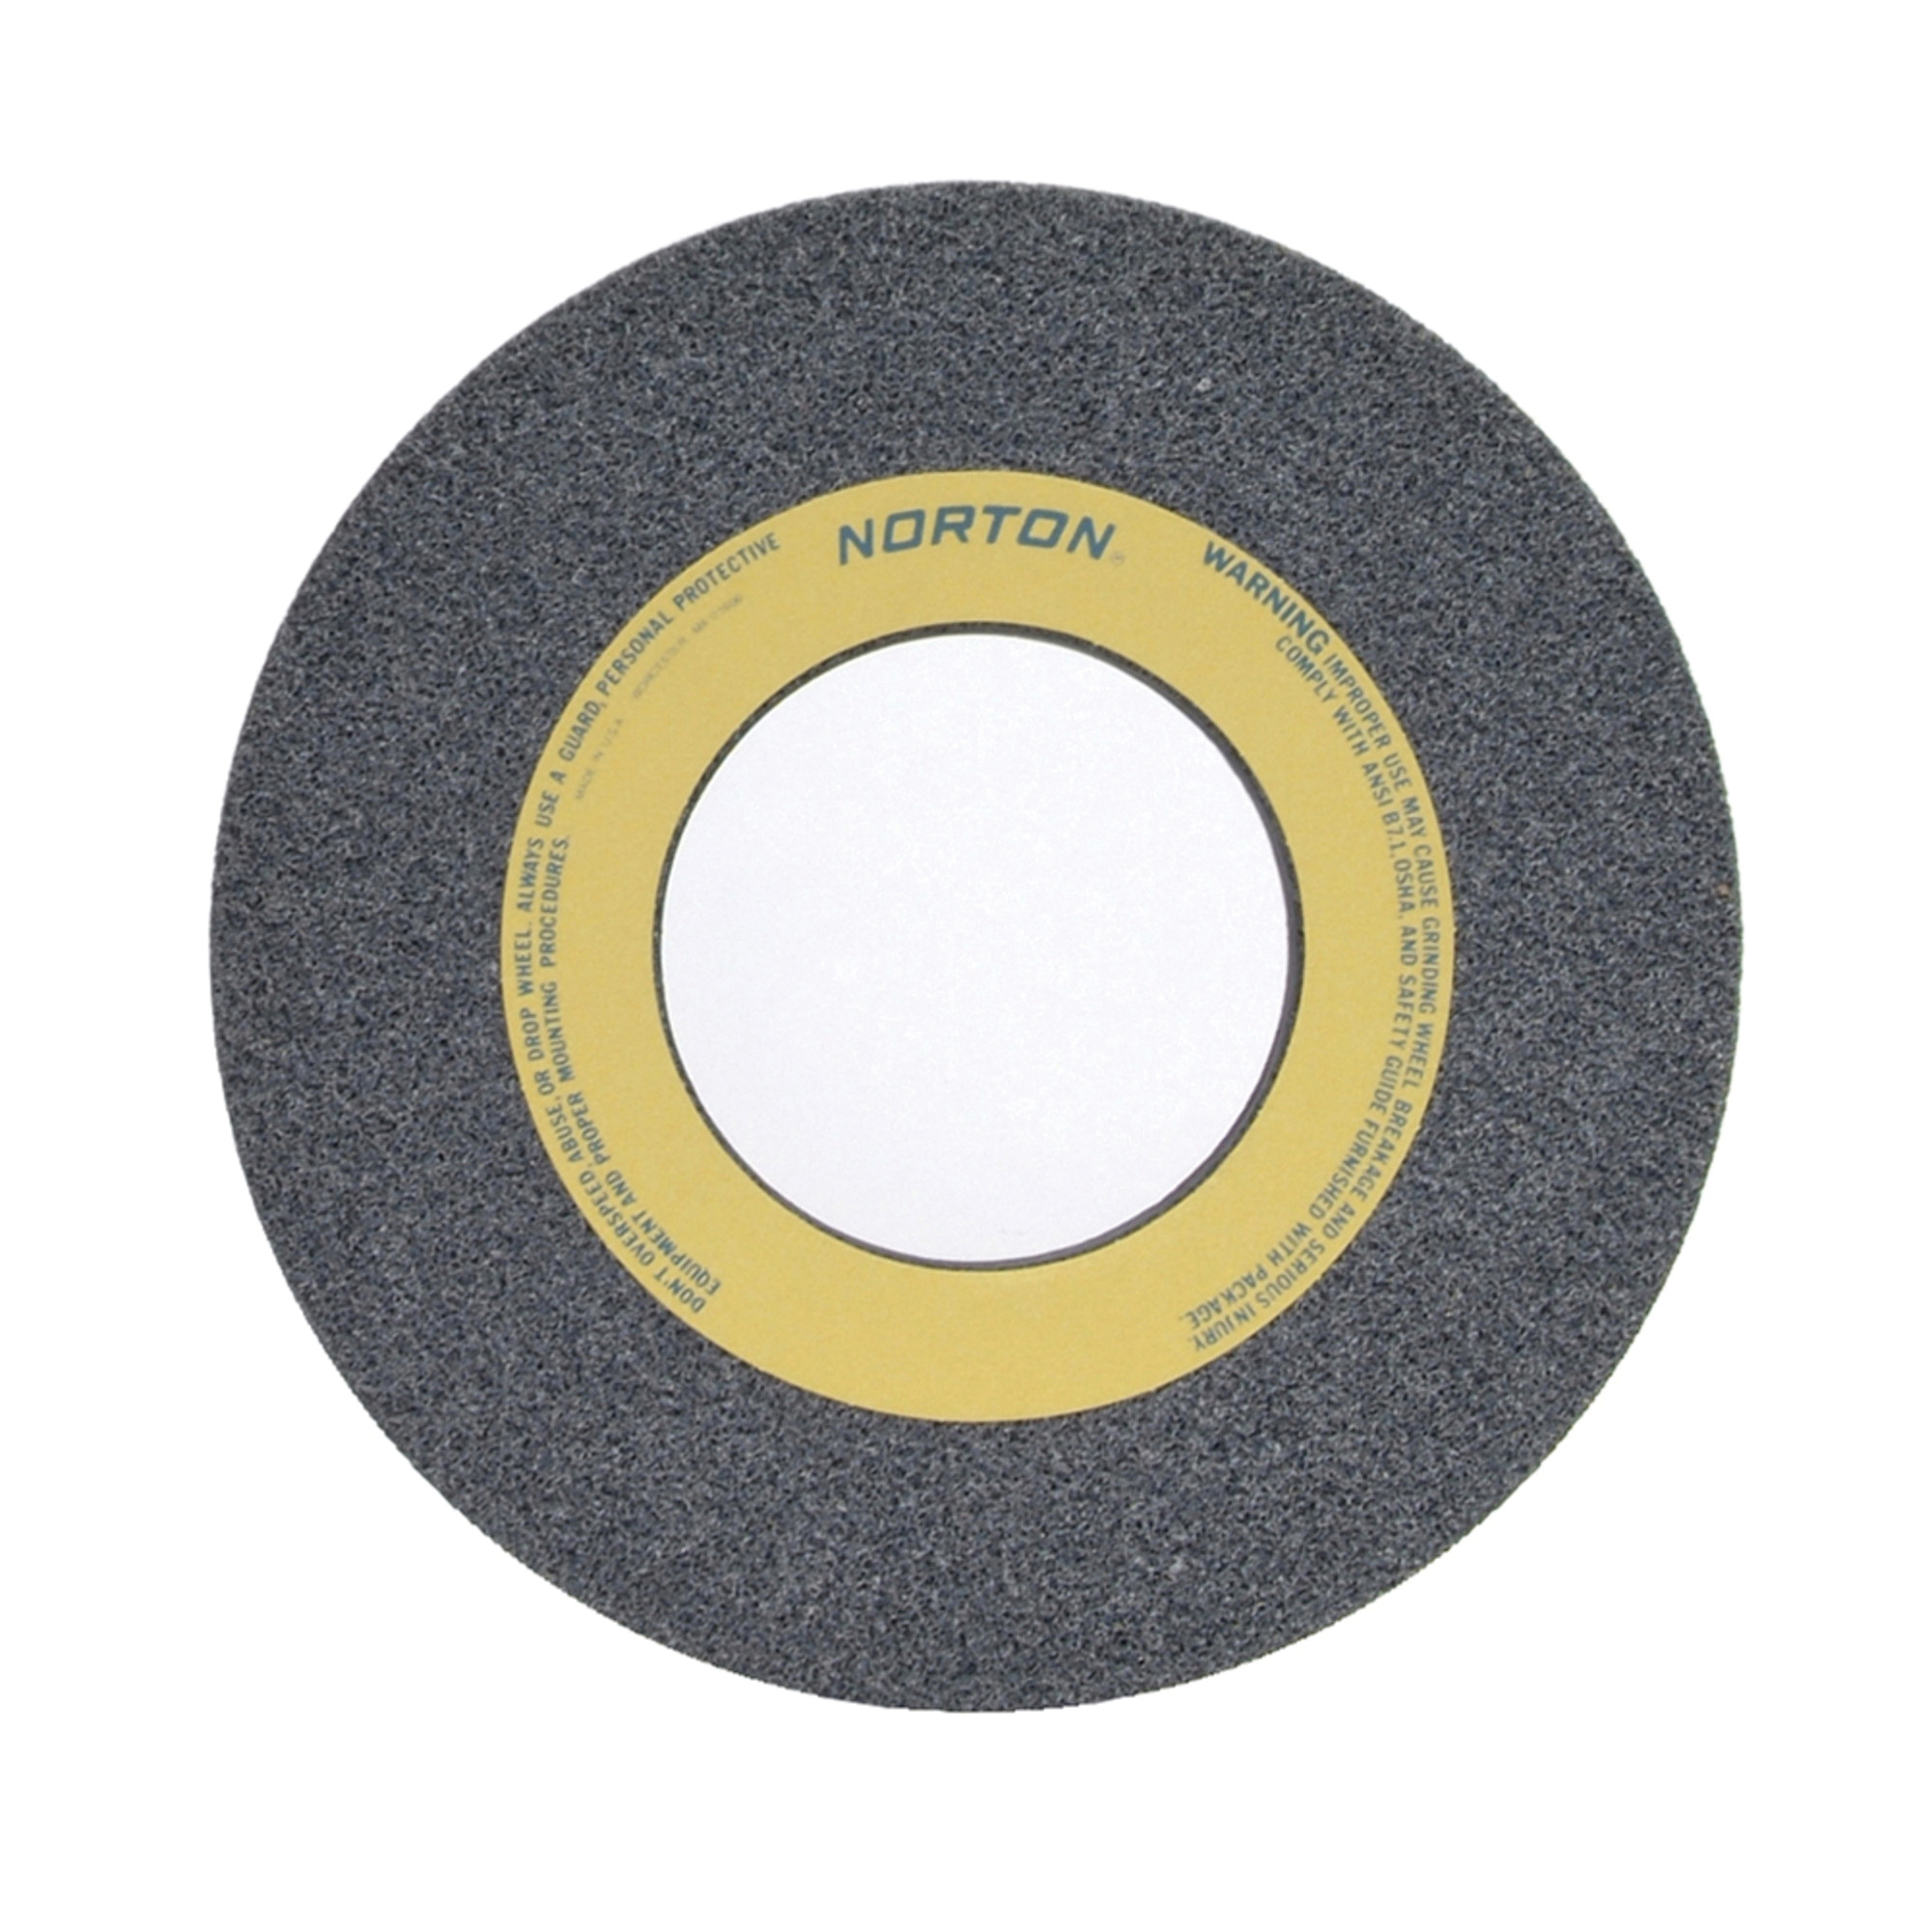 Norton® 66253262107 32A Straight Toolroom Wheel, 12 in Dia x 1/2 in THK, 5 in Center Hole, 60 Grit, Aluminum Oxide Abrasive